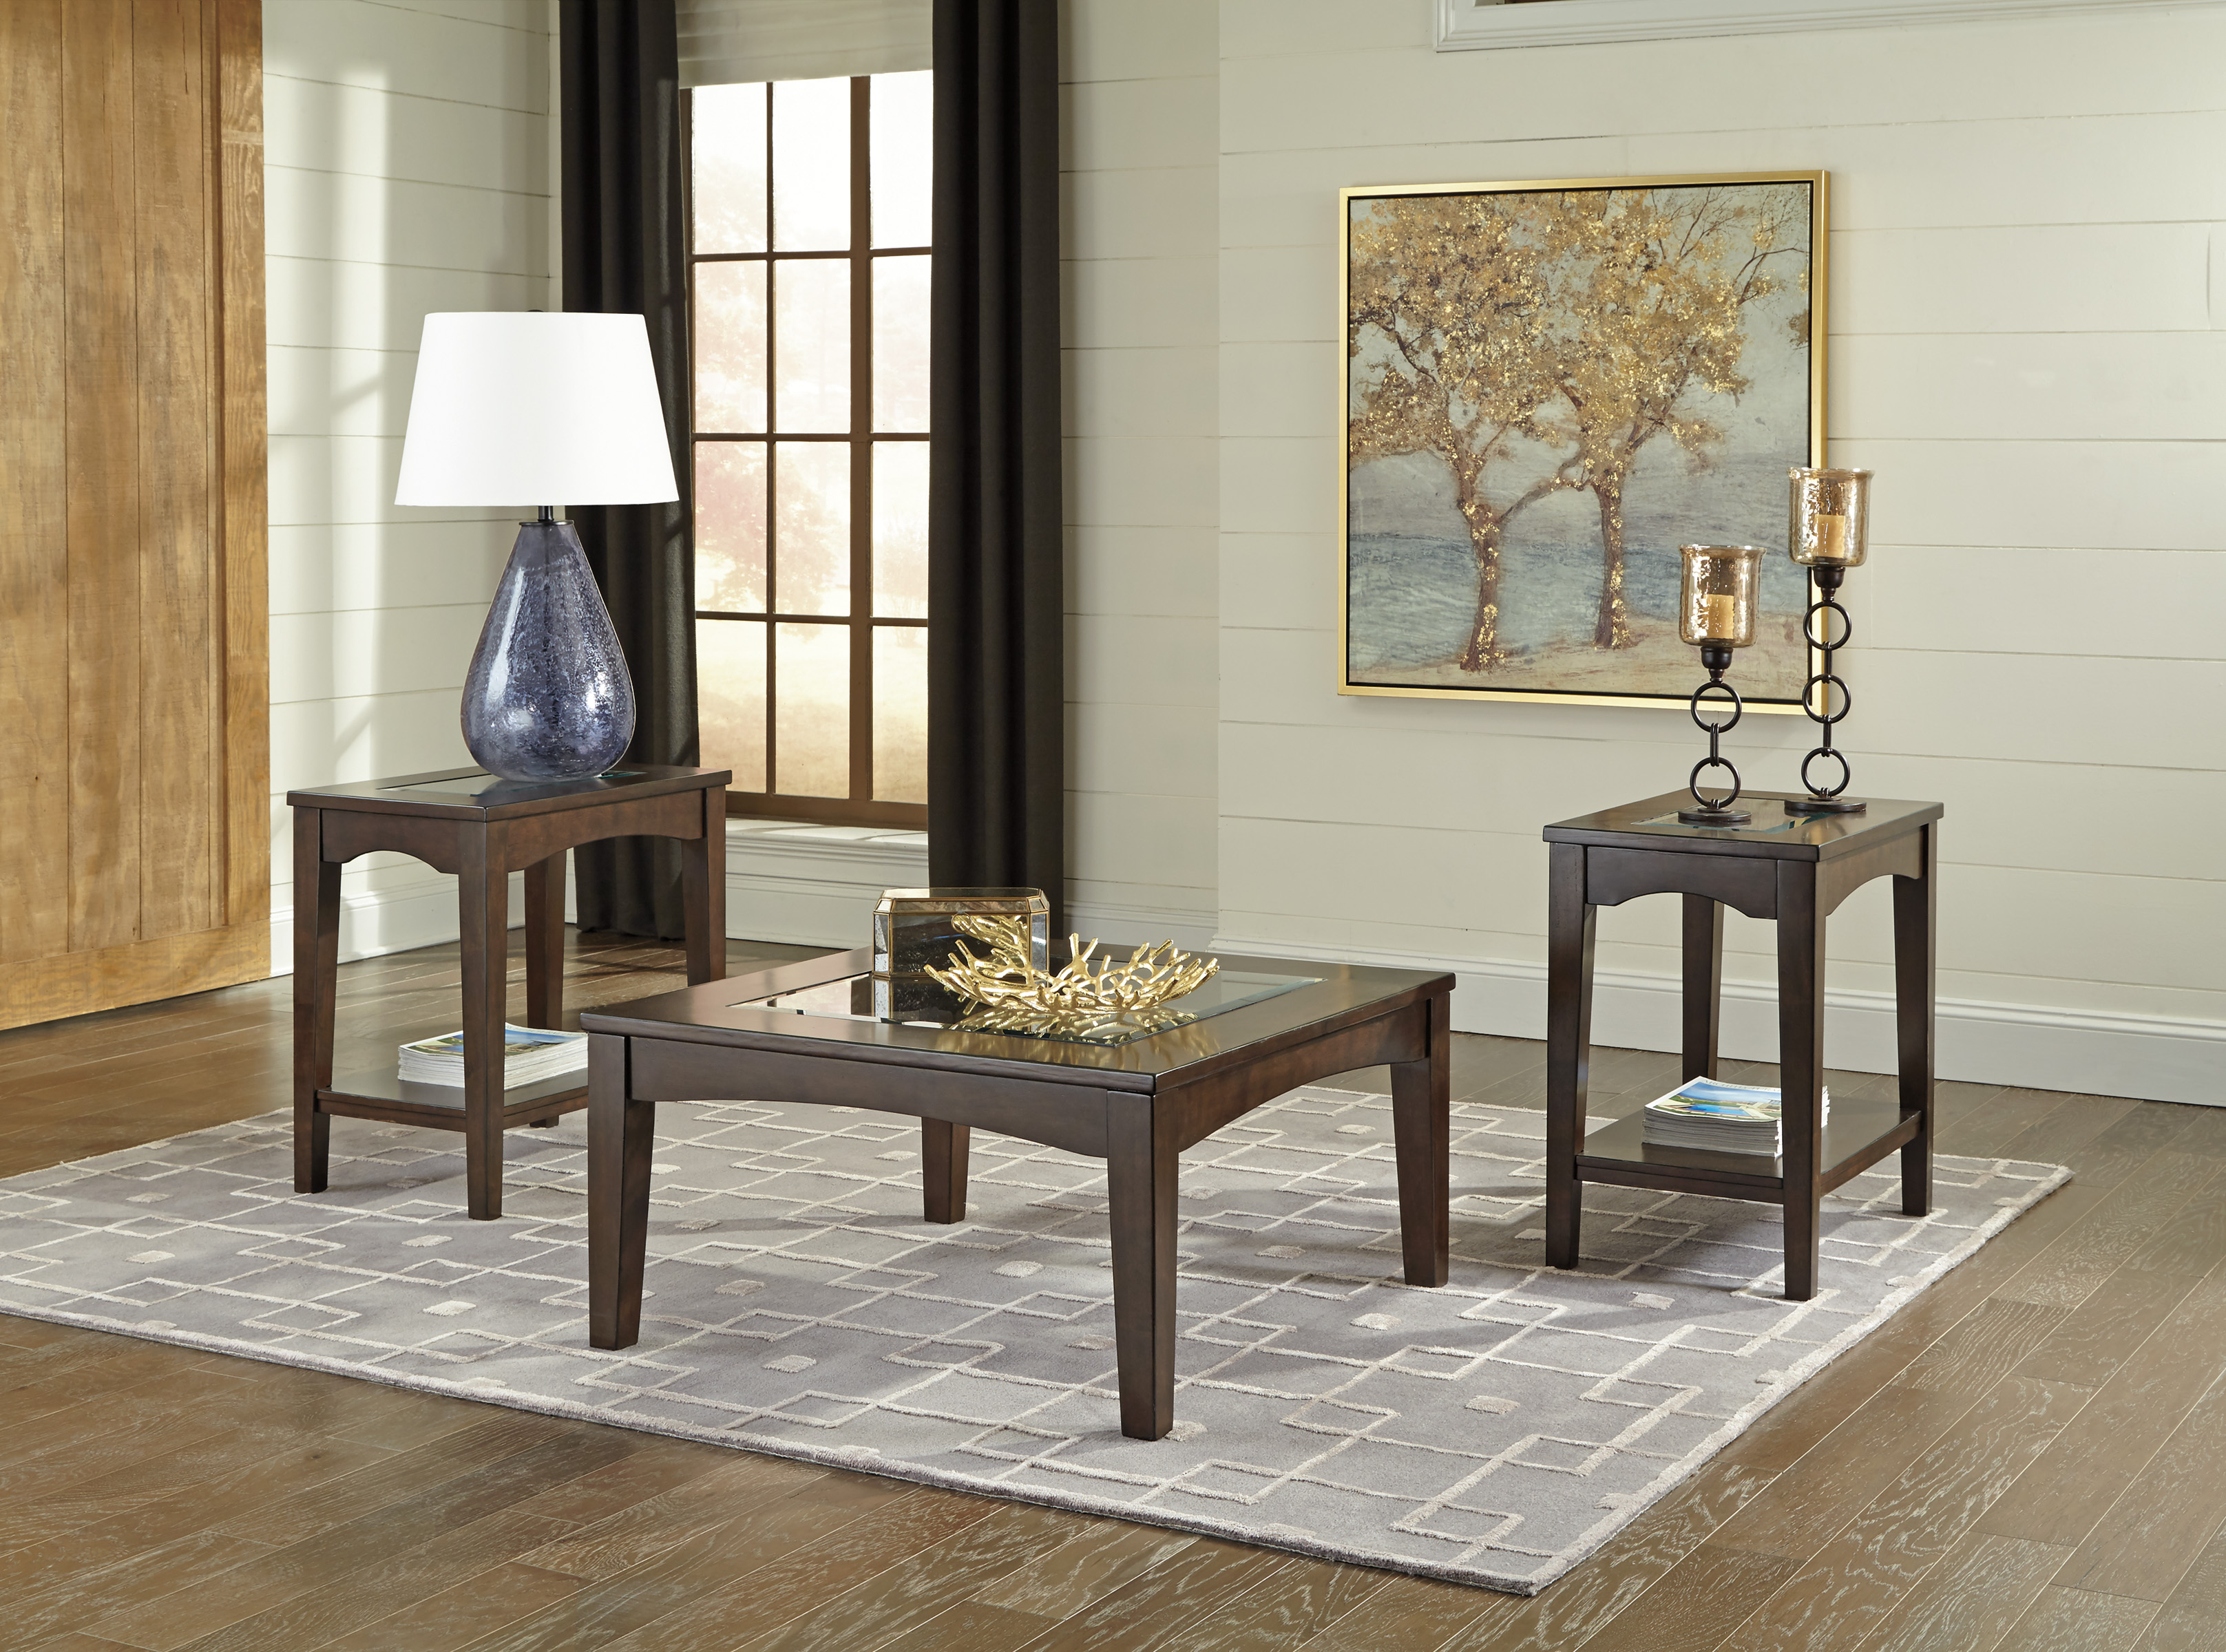 Cronnily T056 by Ashley Coffee Table Set Tempered Glass Birch Rich